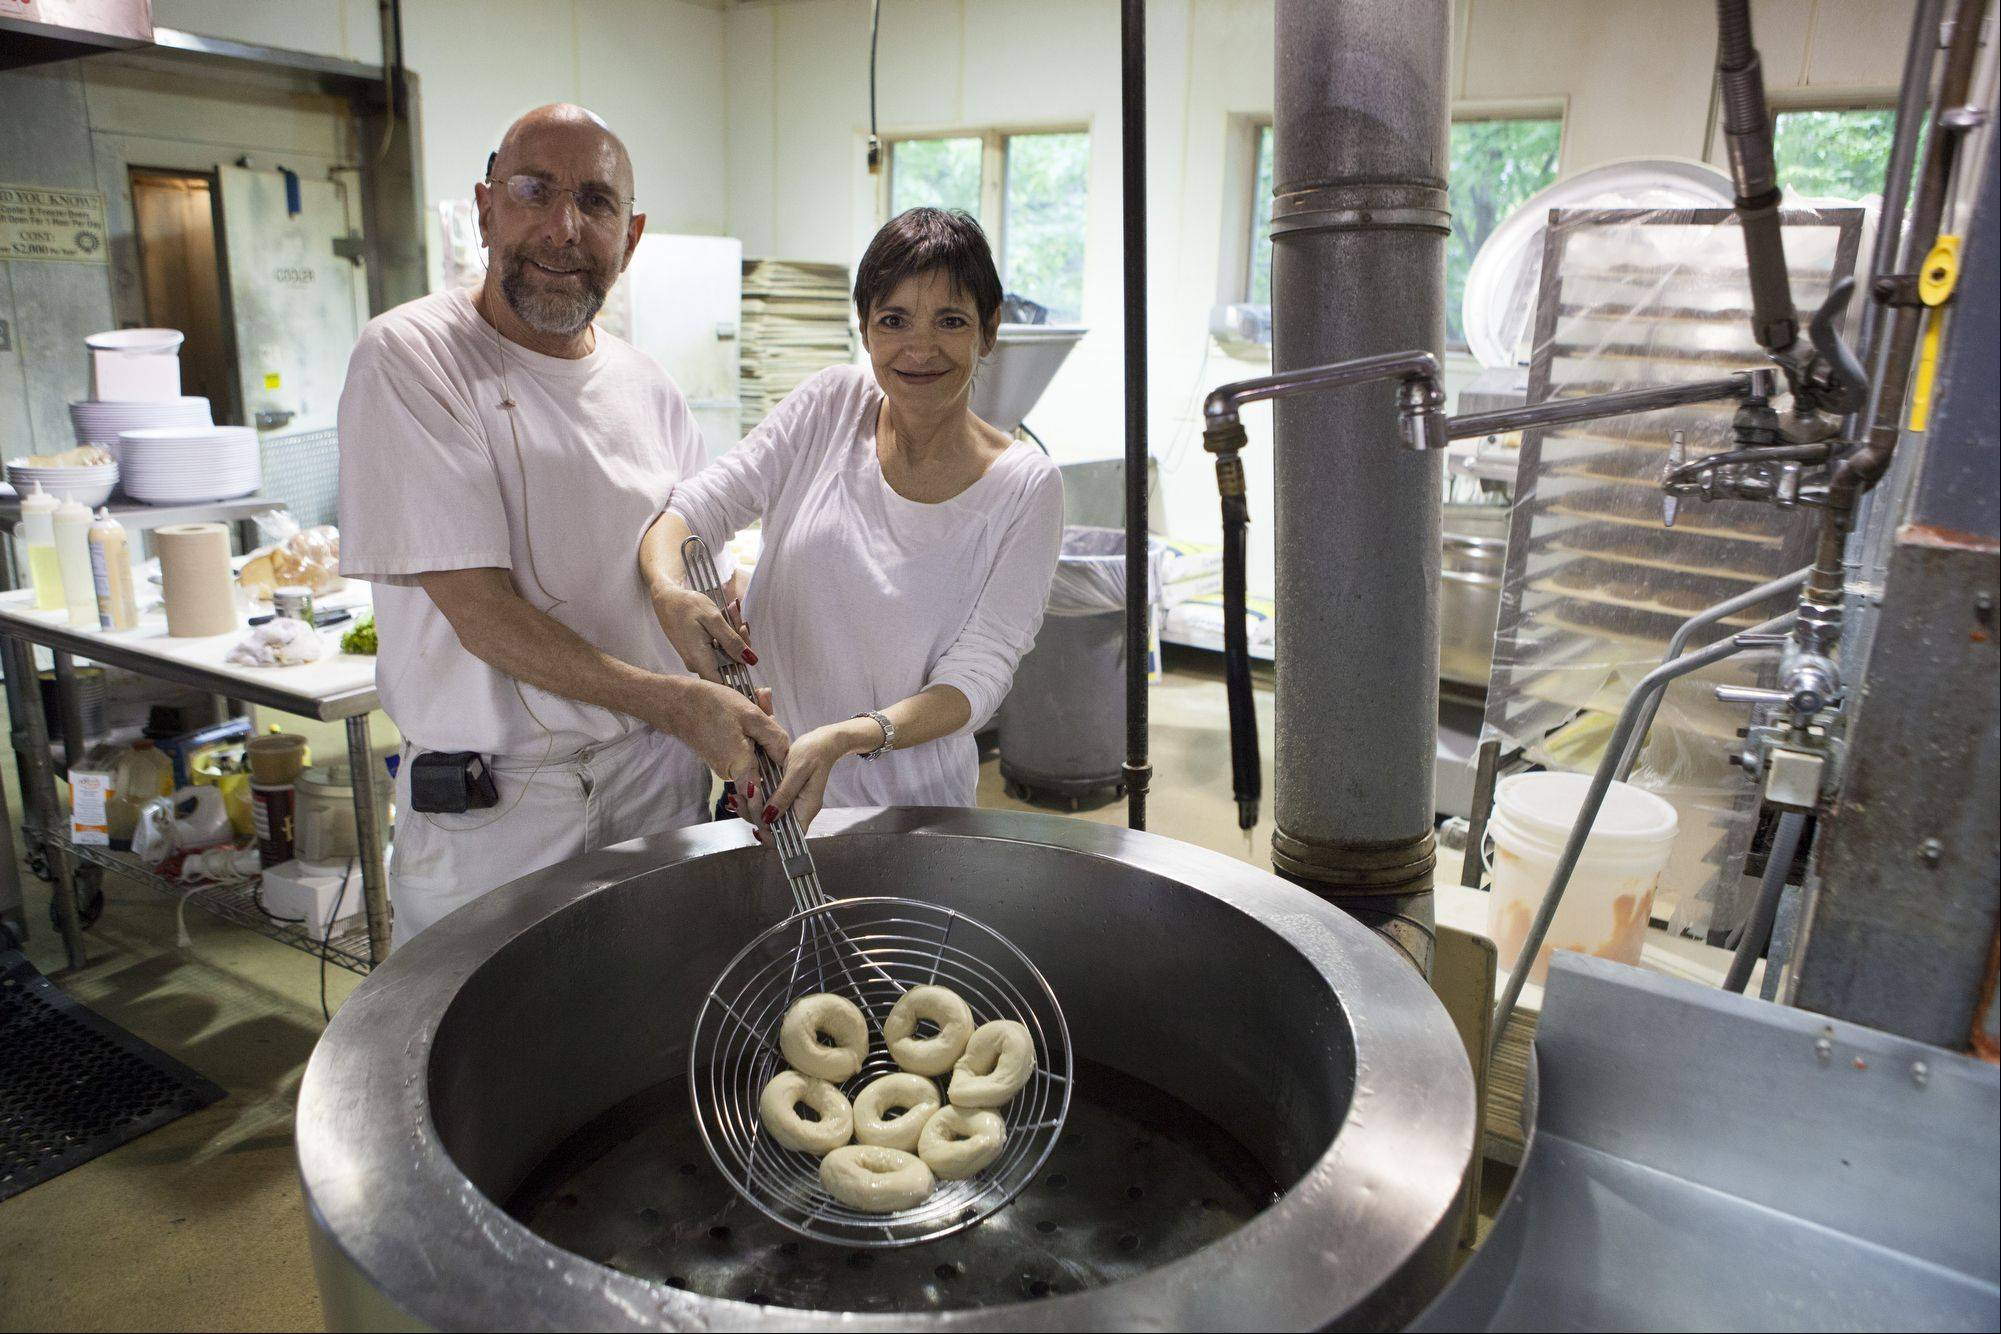 Harold and Sharon Harkavy hold bagels over where they are boiled before being baked. They are the owners of Chicago Bagel and Bialy, which turns 30 years old in July.